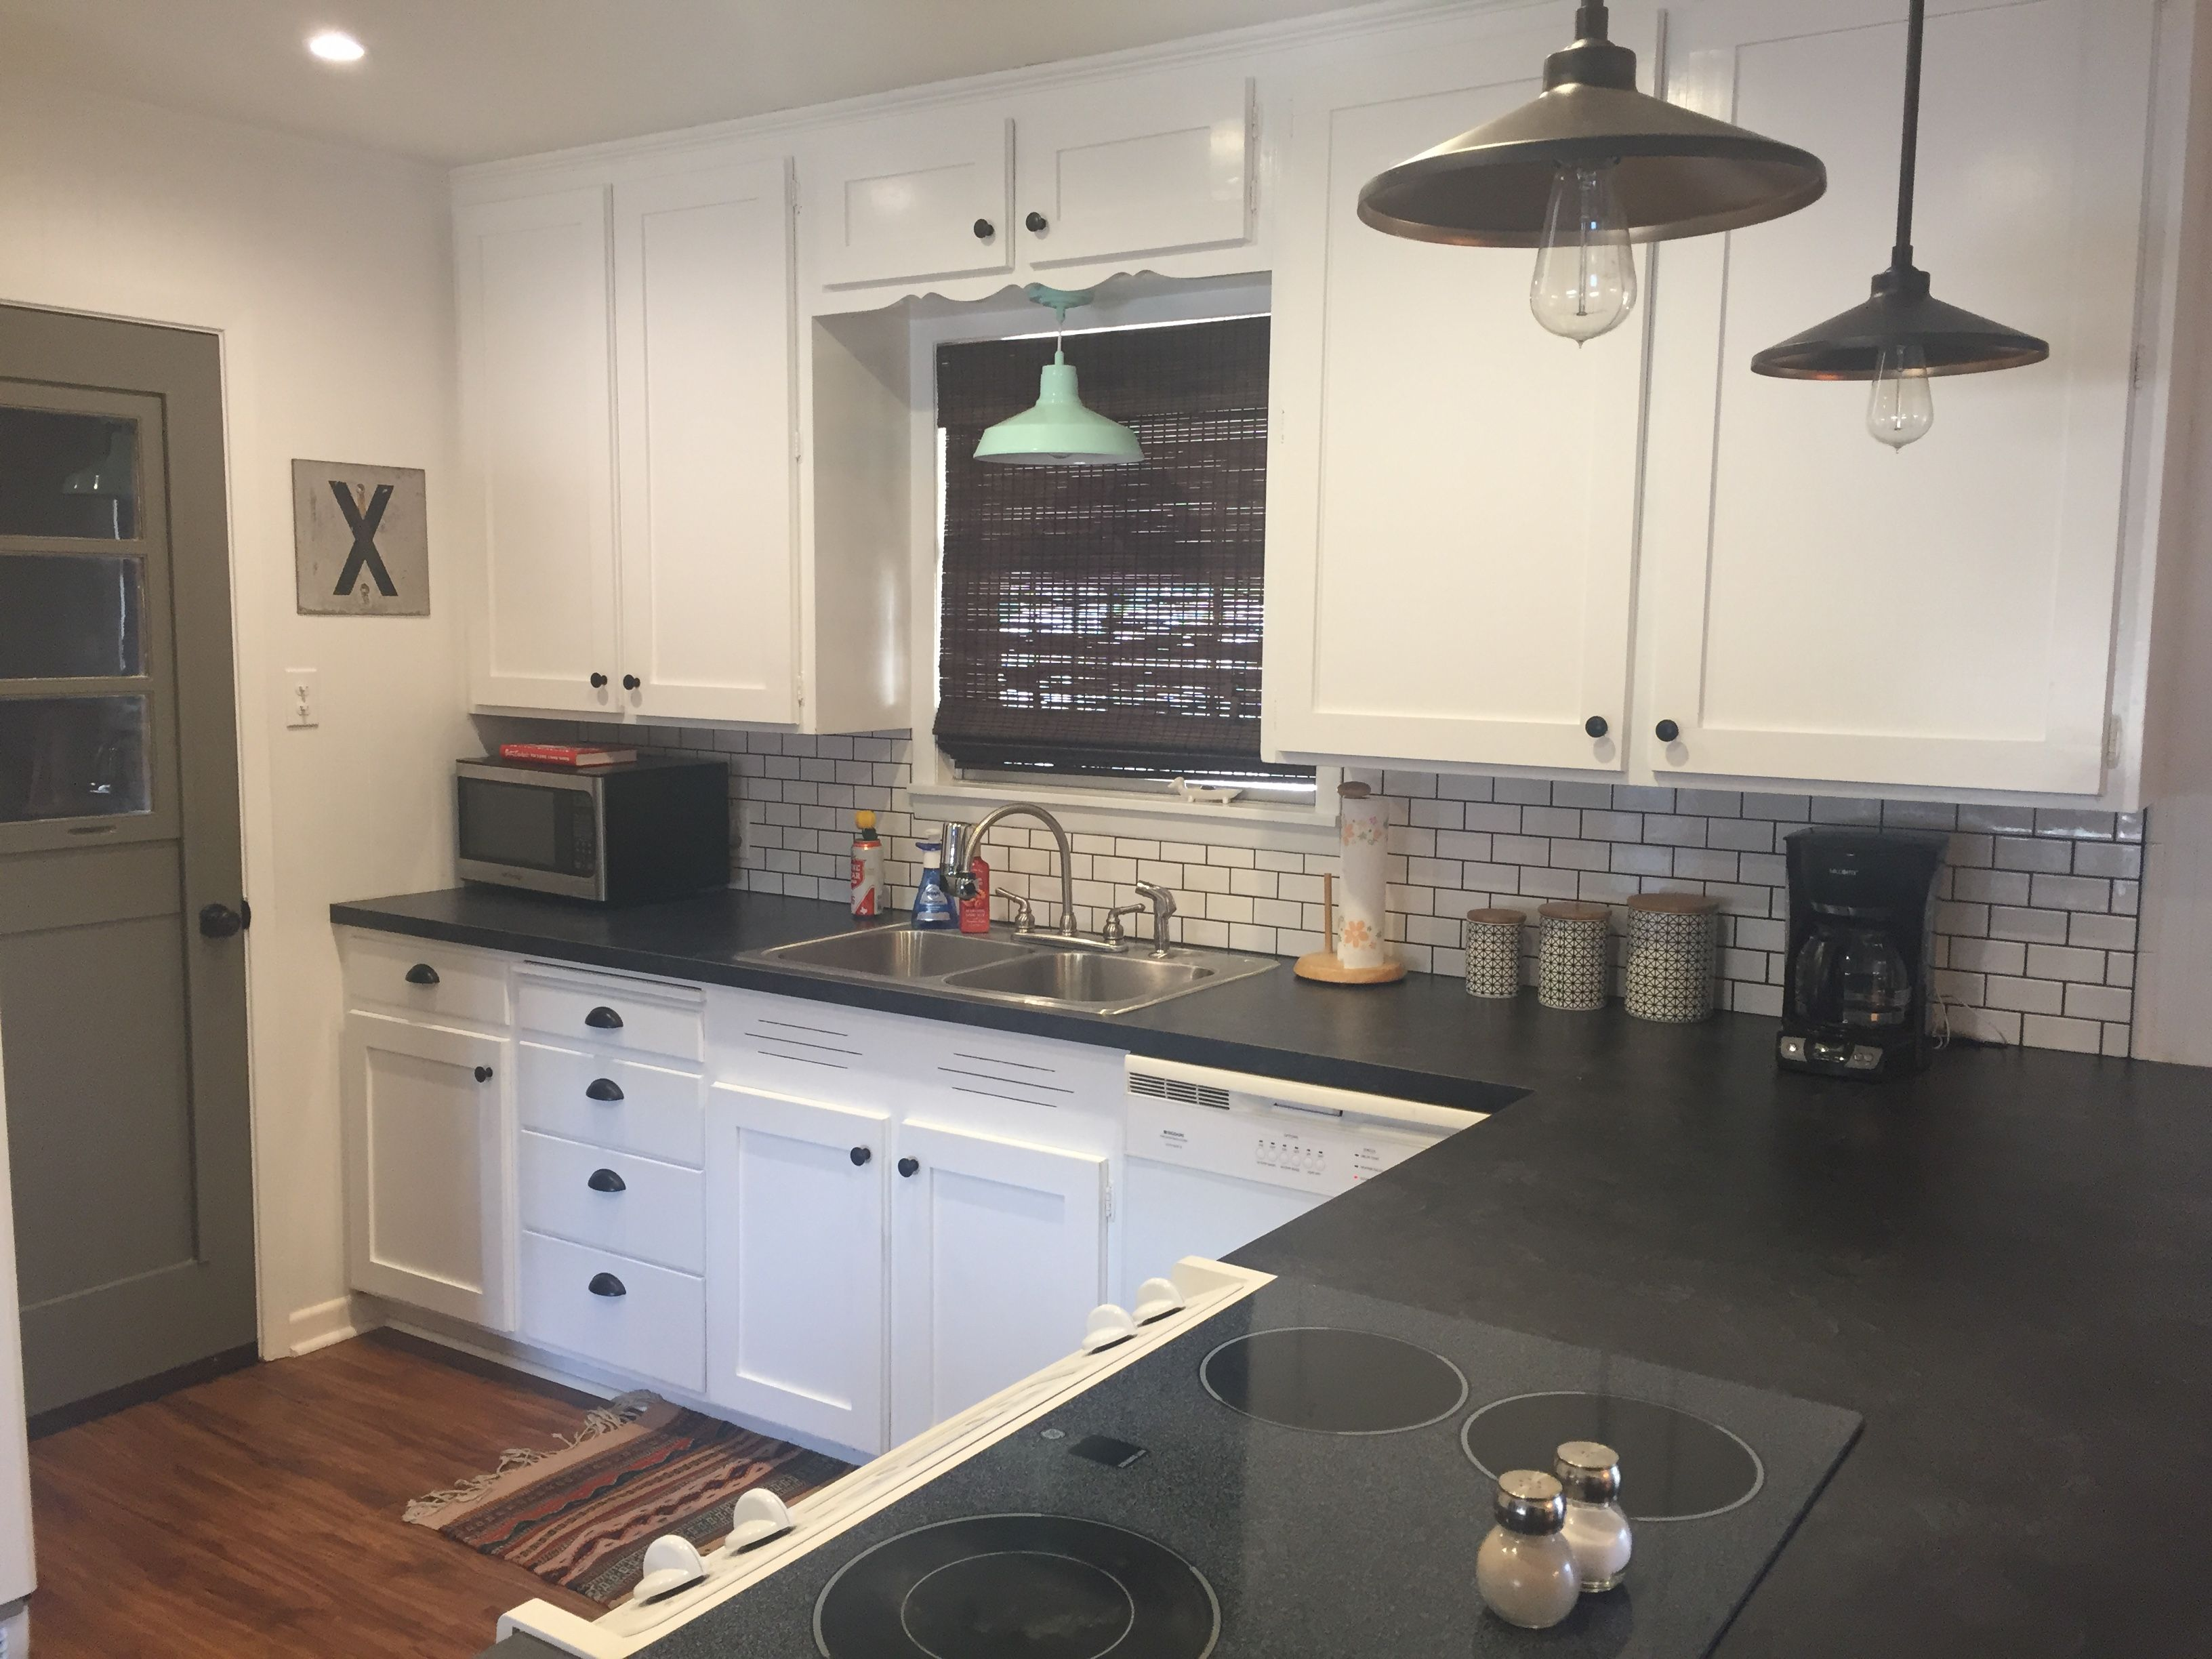 Subway Tile Kitchen Countertops Formica Basalt Slate with Scovato finish. Mini subway tiles and black grout.